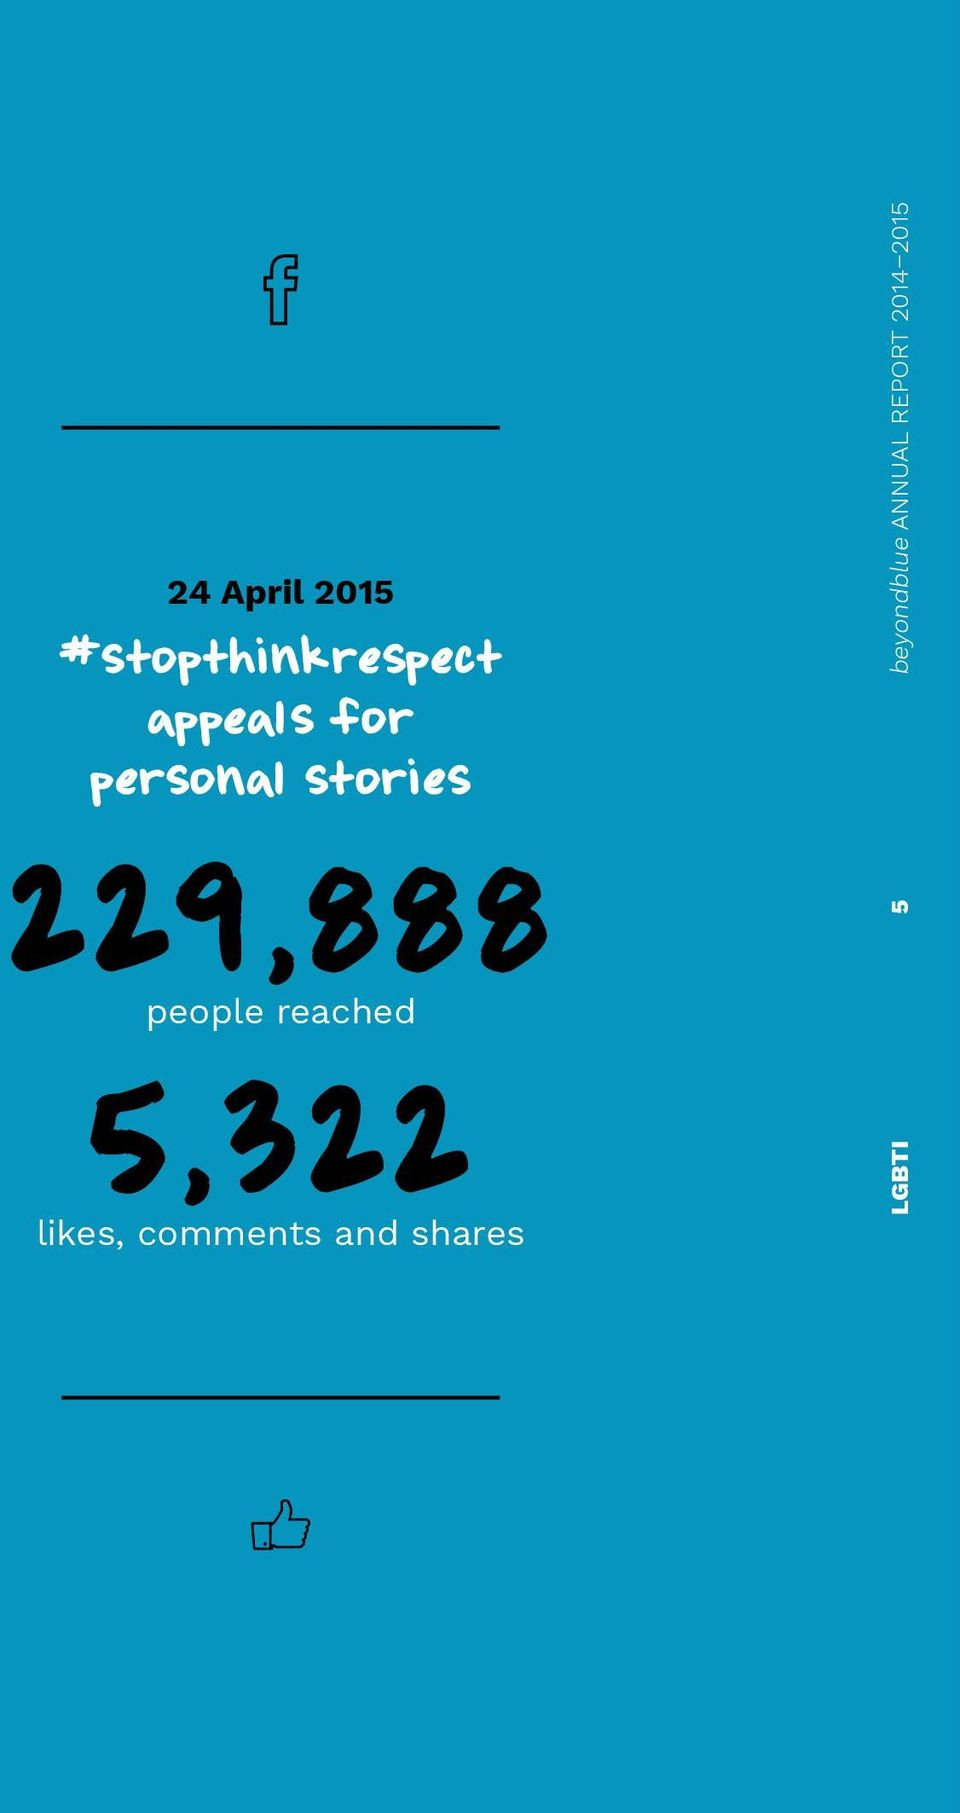 REPORT 2014 2015 229,888 people reached